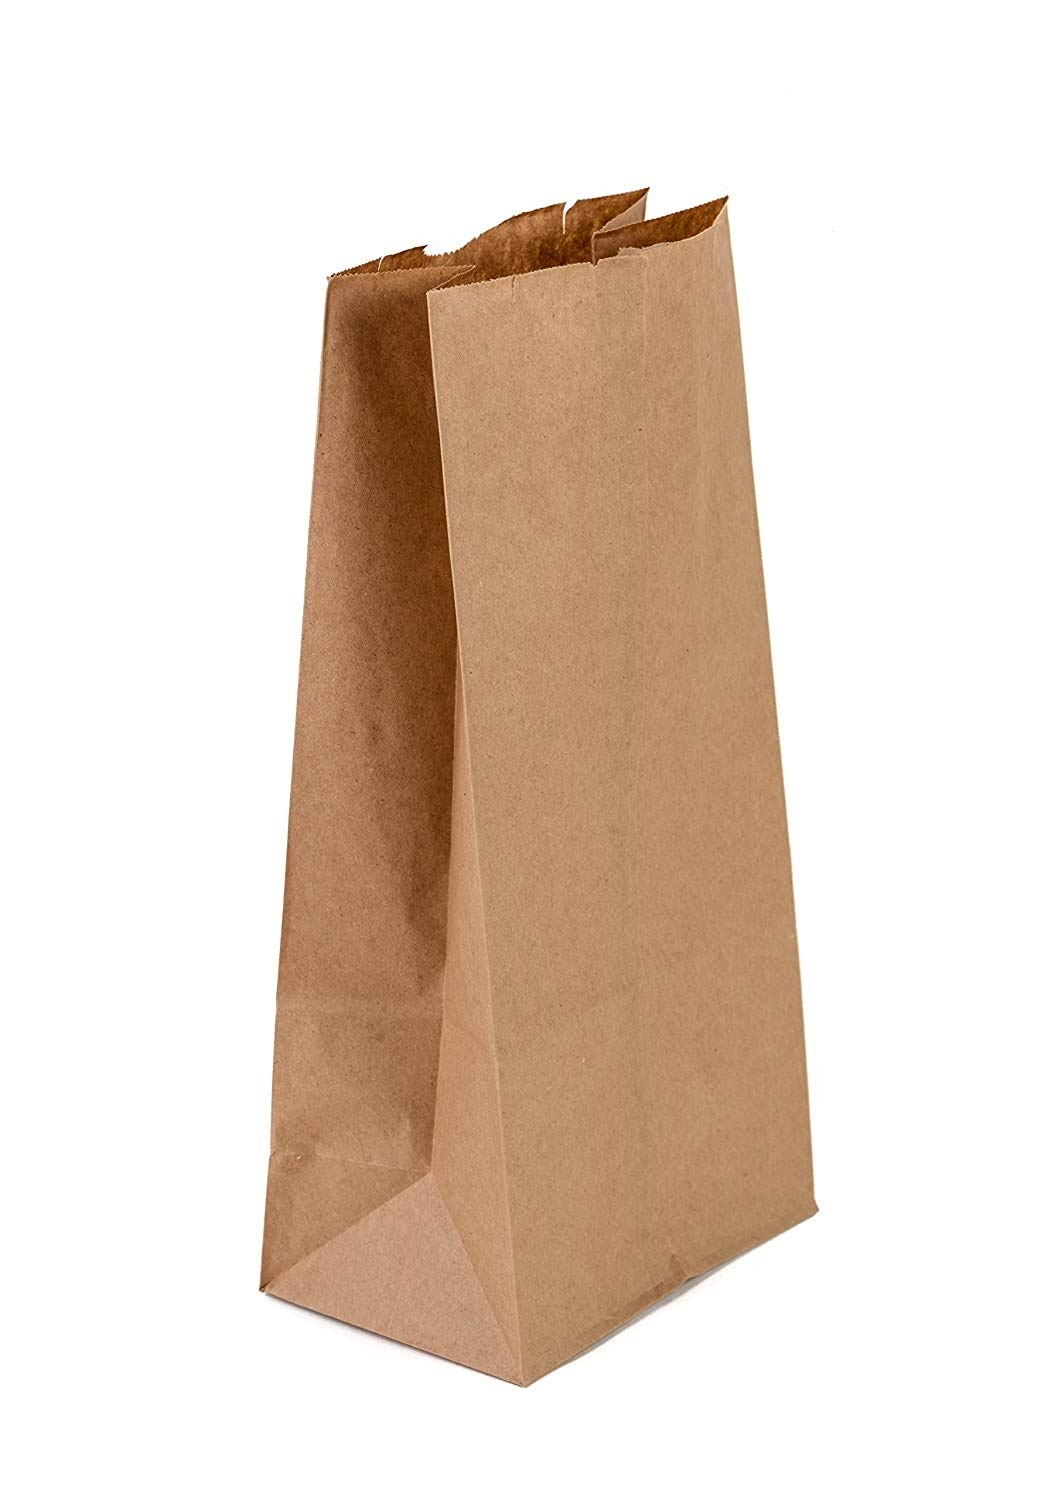 (#6-500 pcs) Kraft Brown Paper Bags Reusable Grocery Bags Great Gift Bag Recyclable Shopping Bags Lunch Snack Bags Size (6.0